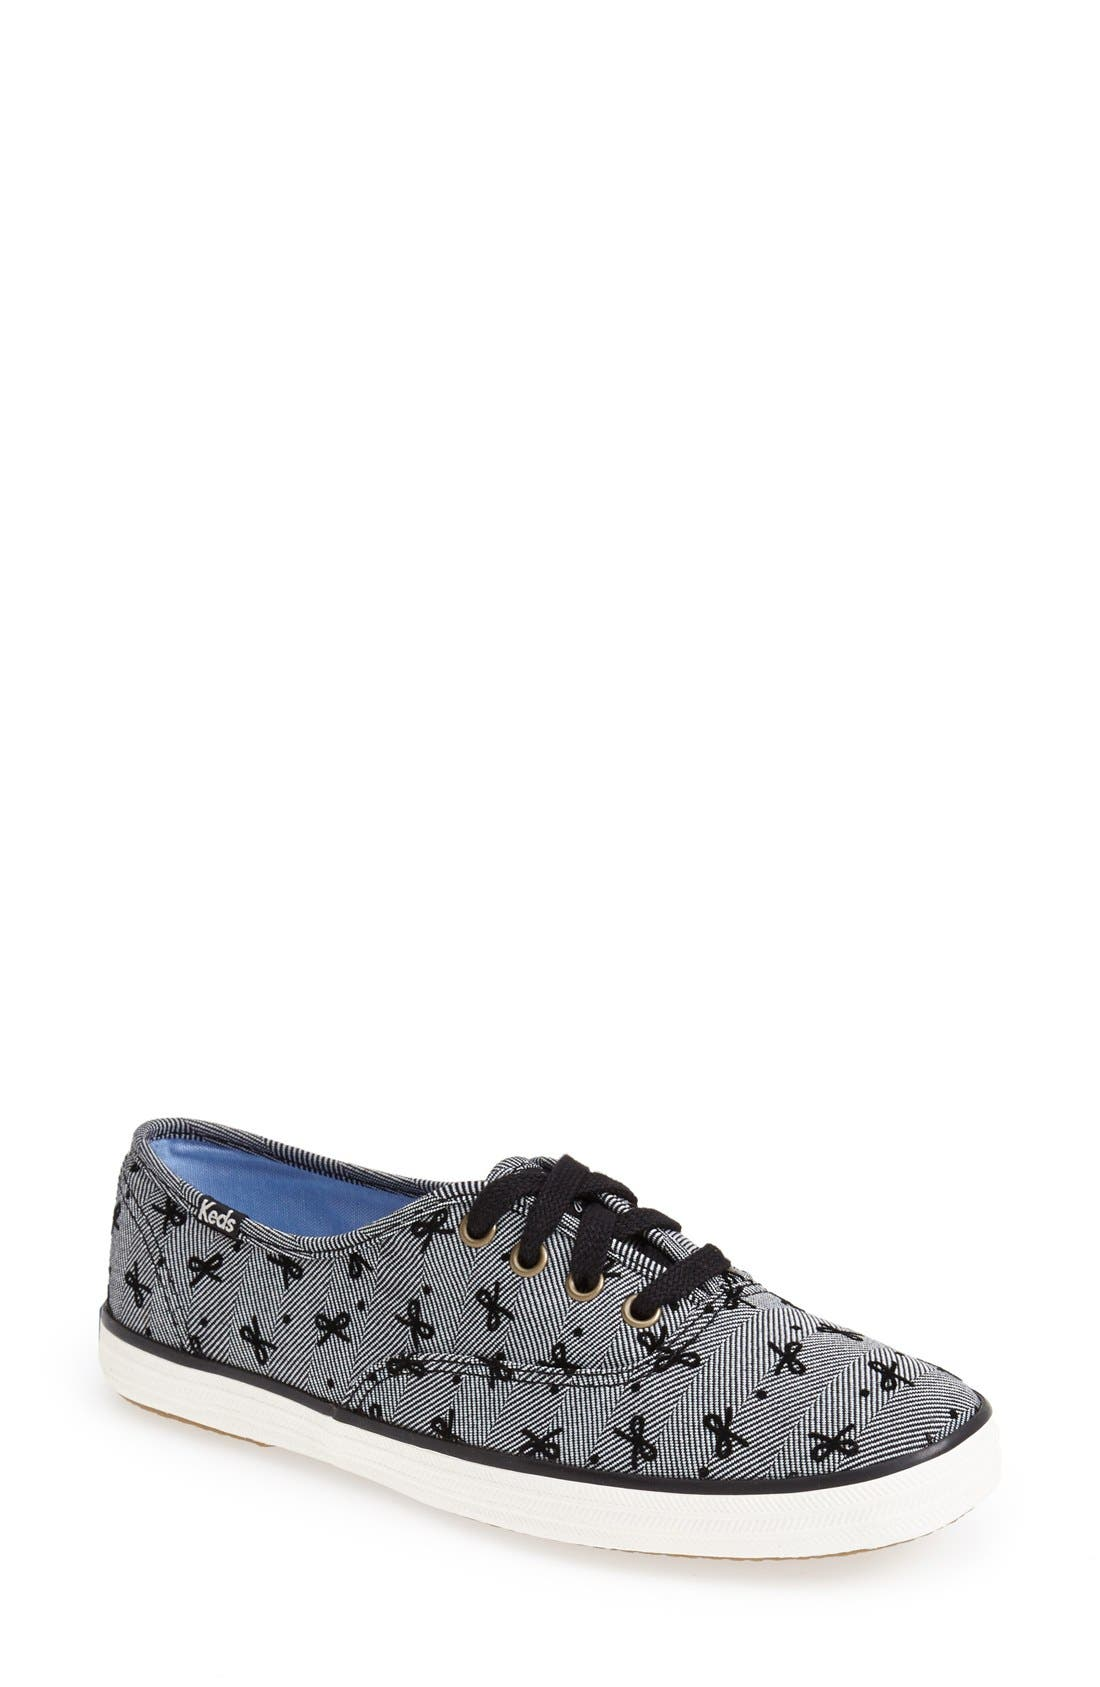 Alternate Image 1 Selected - Keds® Taylor Swift 'Champion - Bow' Sneaker (Women)